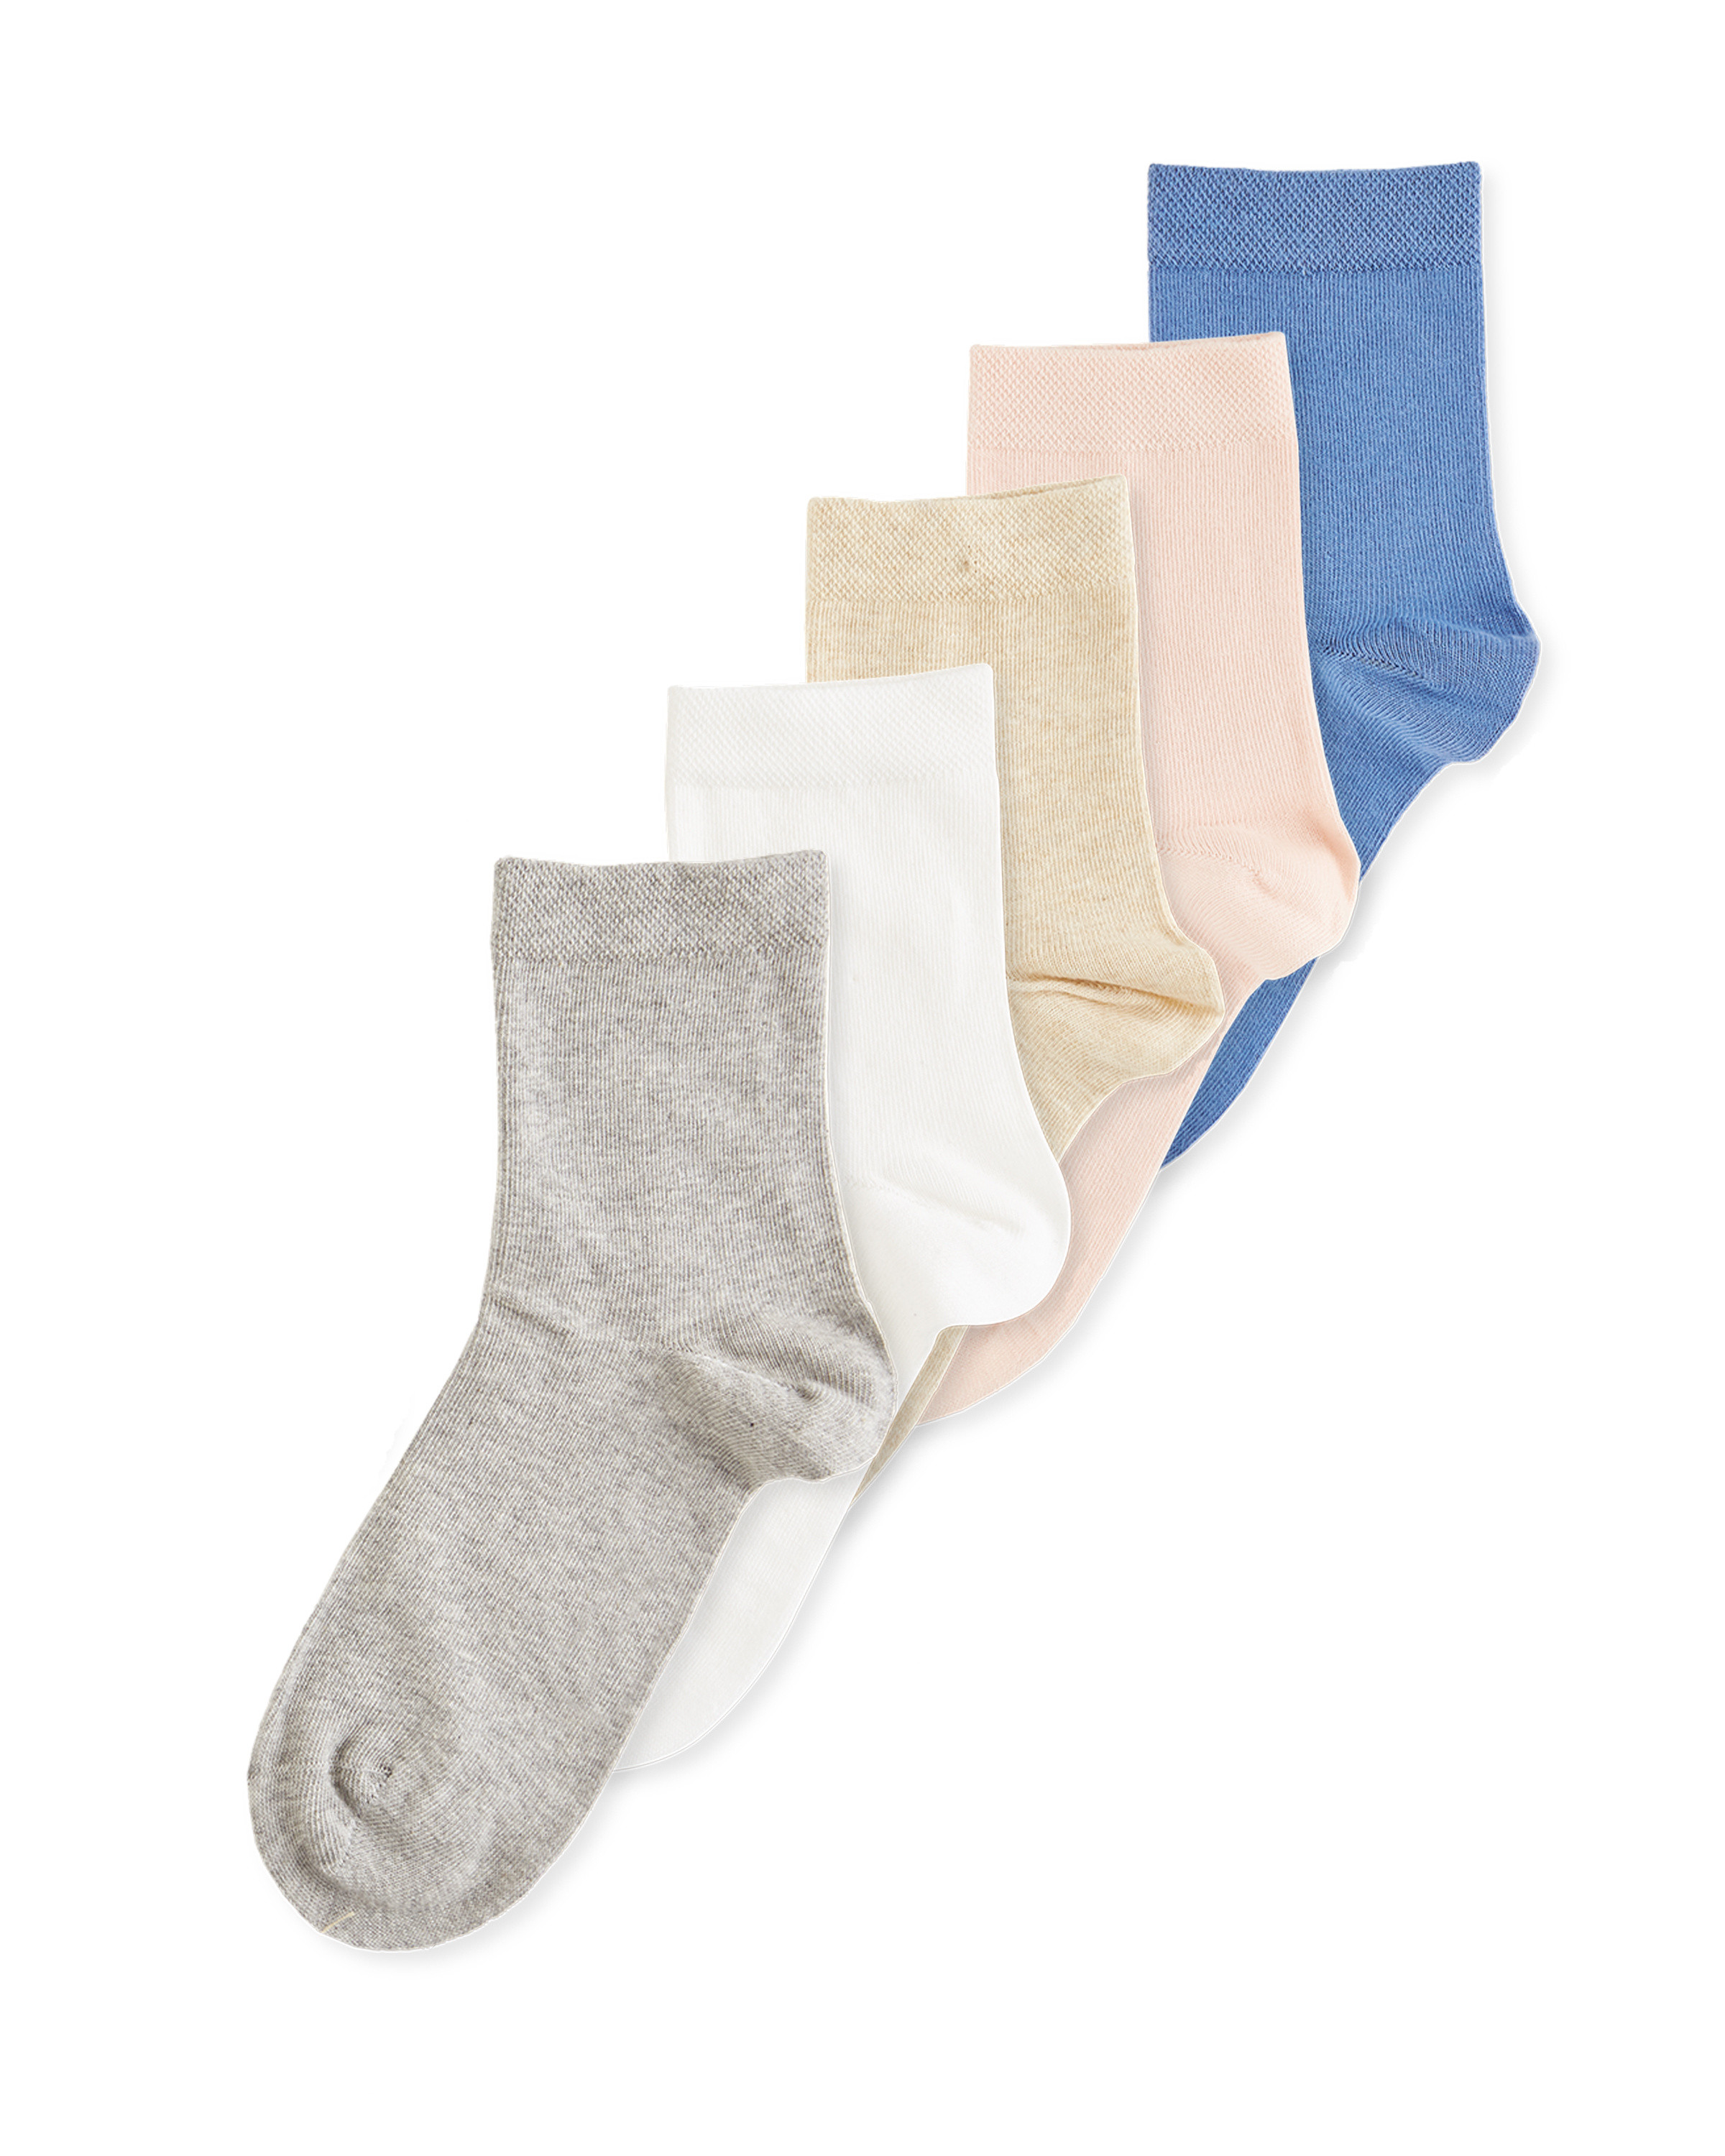 Neutral Organic Cotton Socks 5 Pack